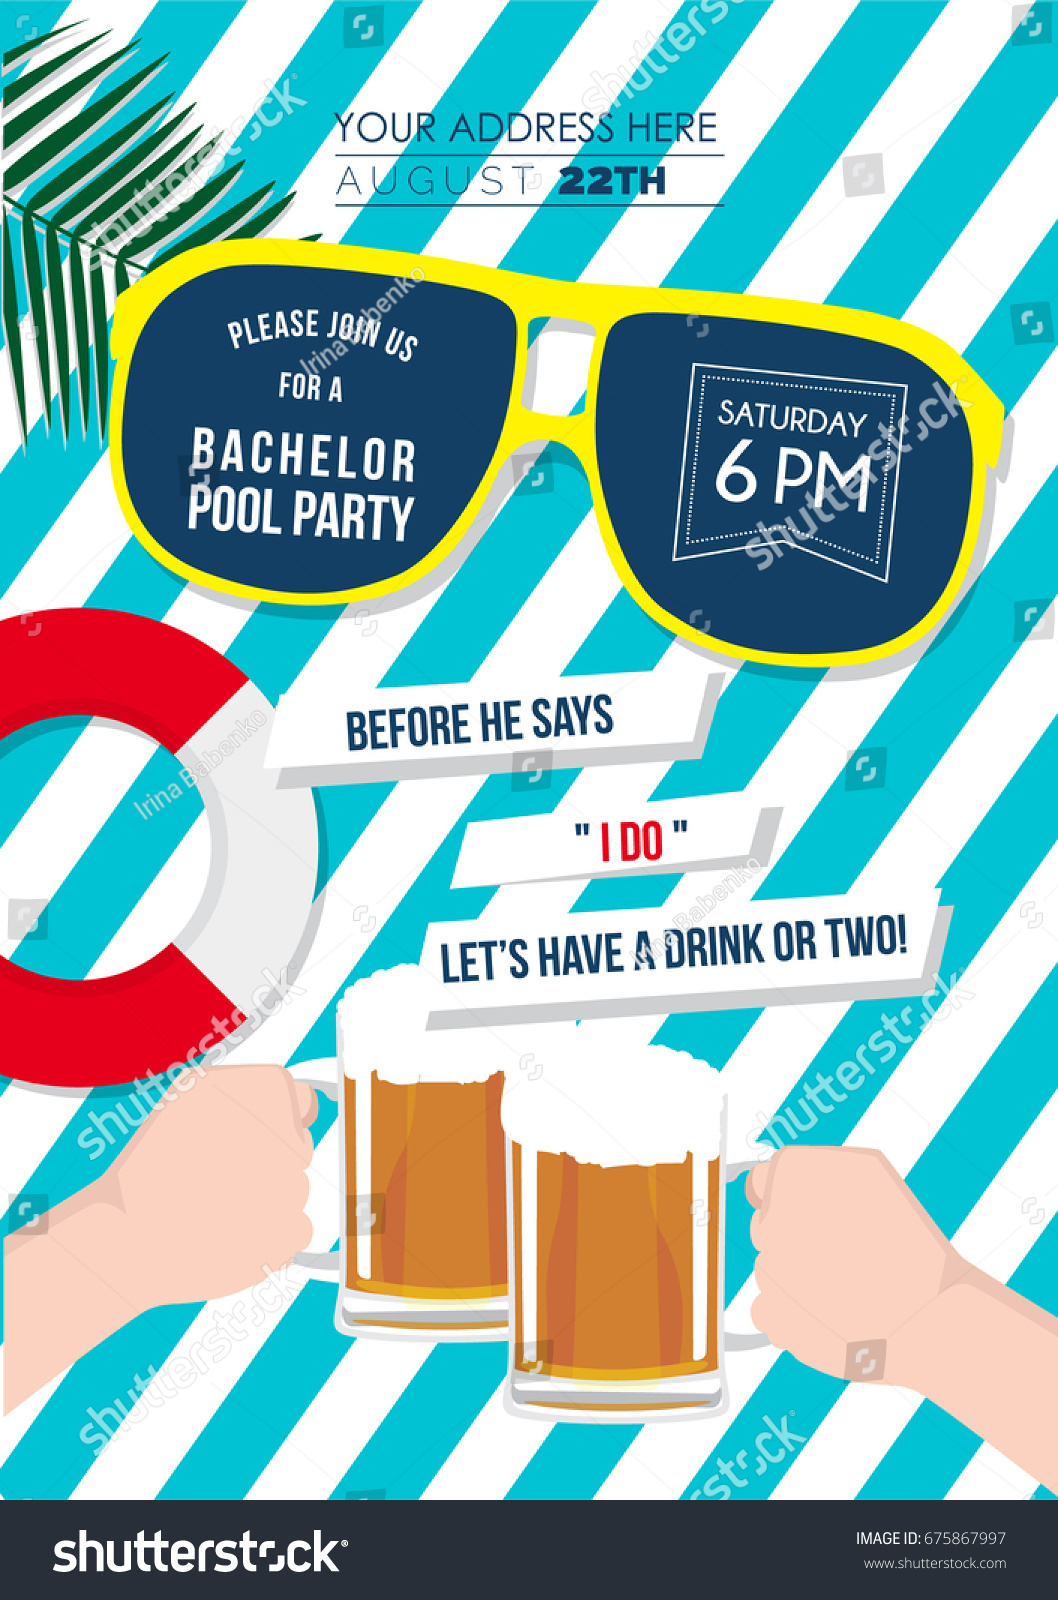 Bachelor Swimming Pool Party Invitation Card Stock Vector